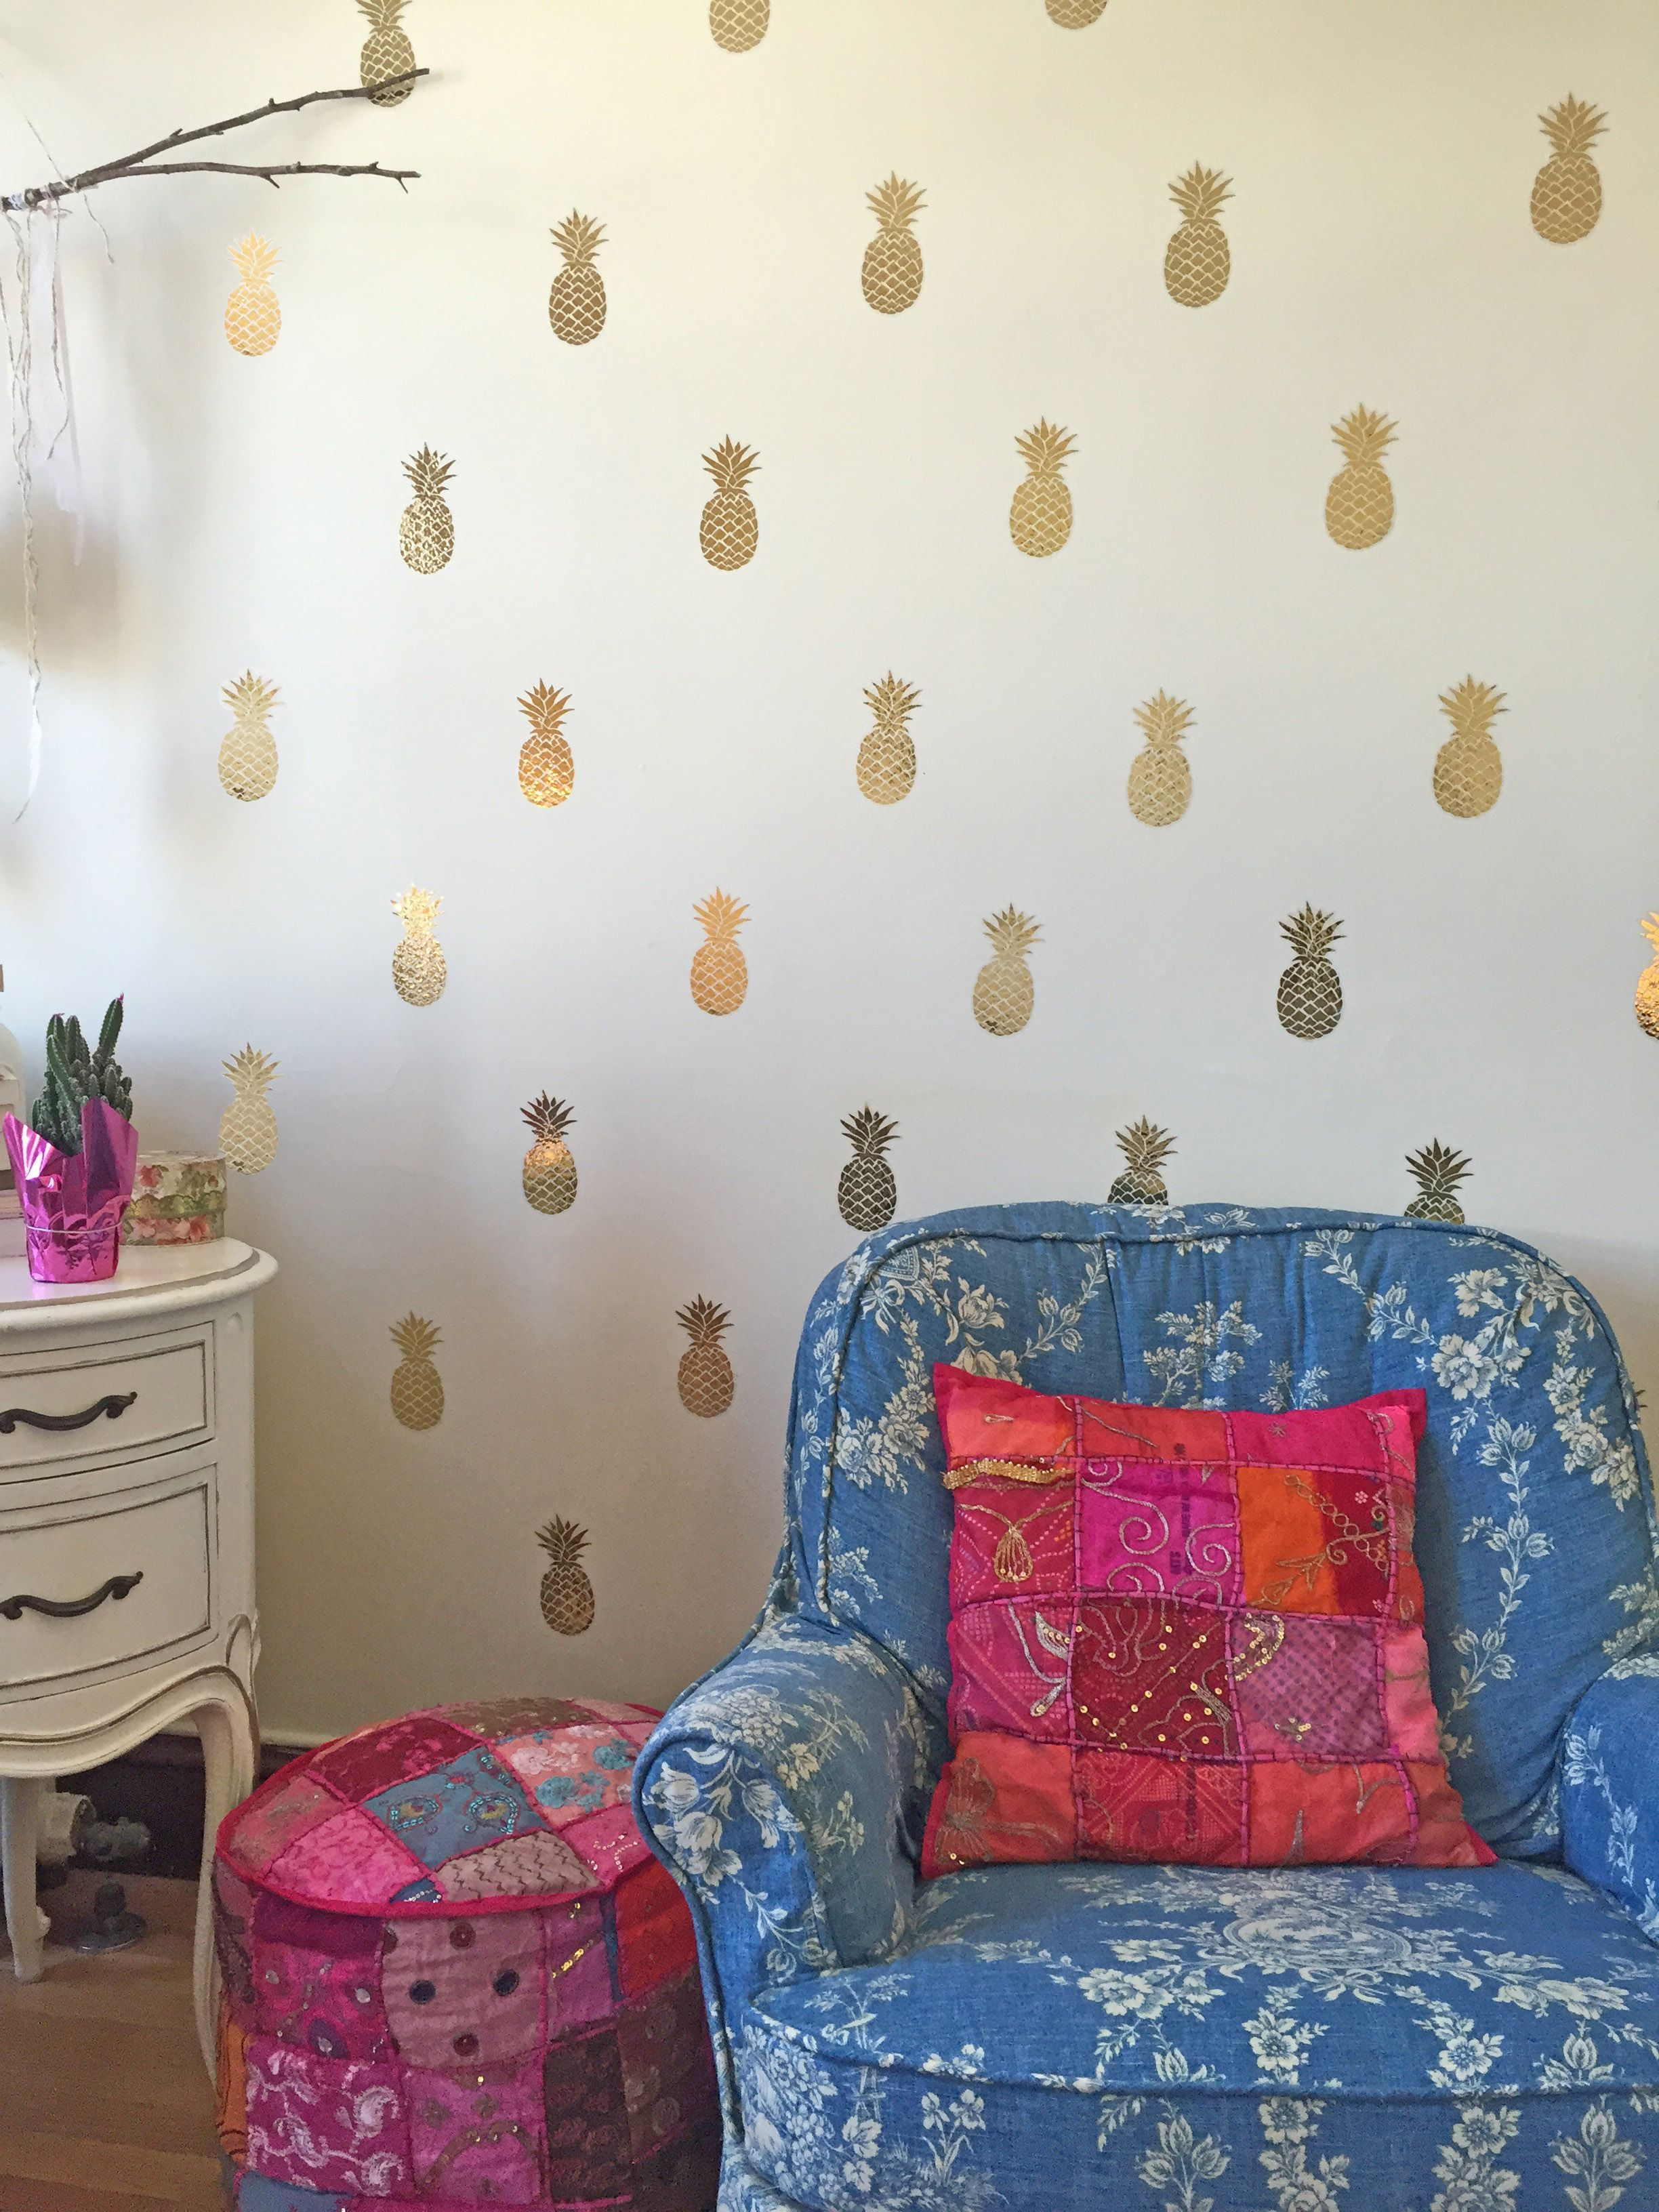 Gold Pineapple Wall Decalslooks Like Pineapple Wallpaper Put A - Wall decals like wallpaper